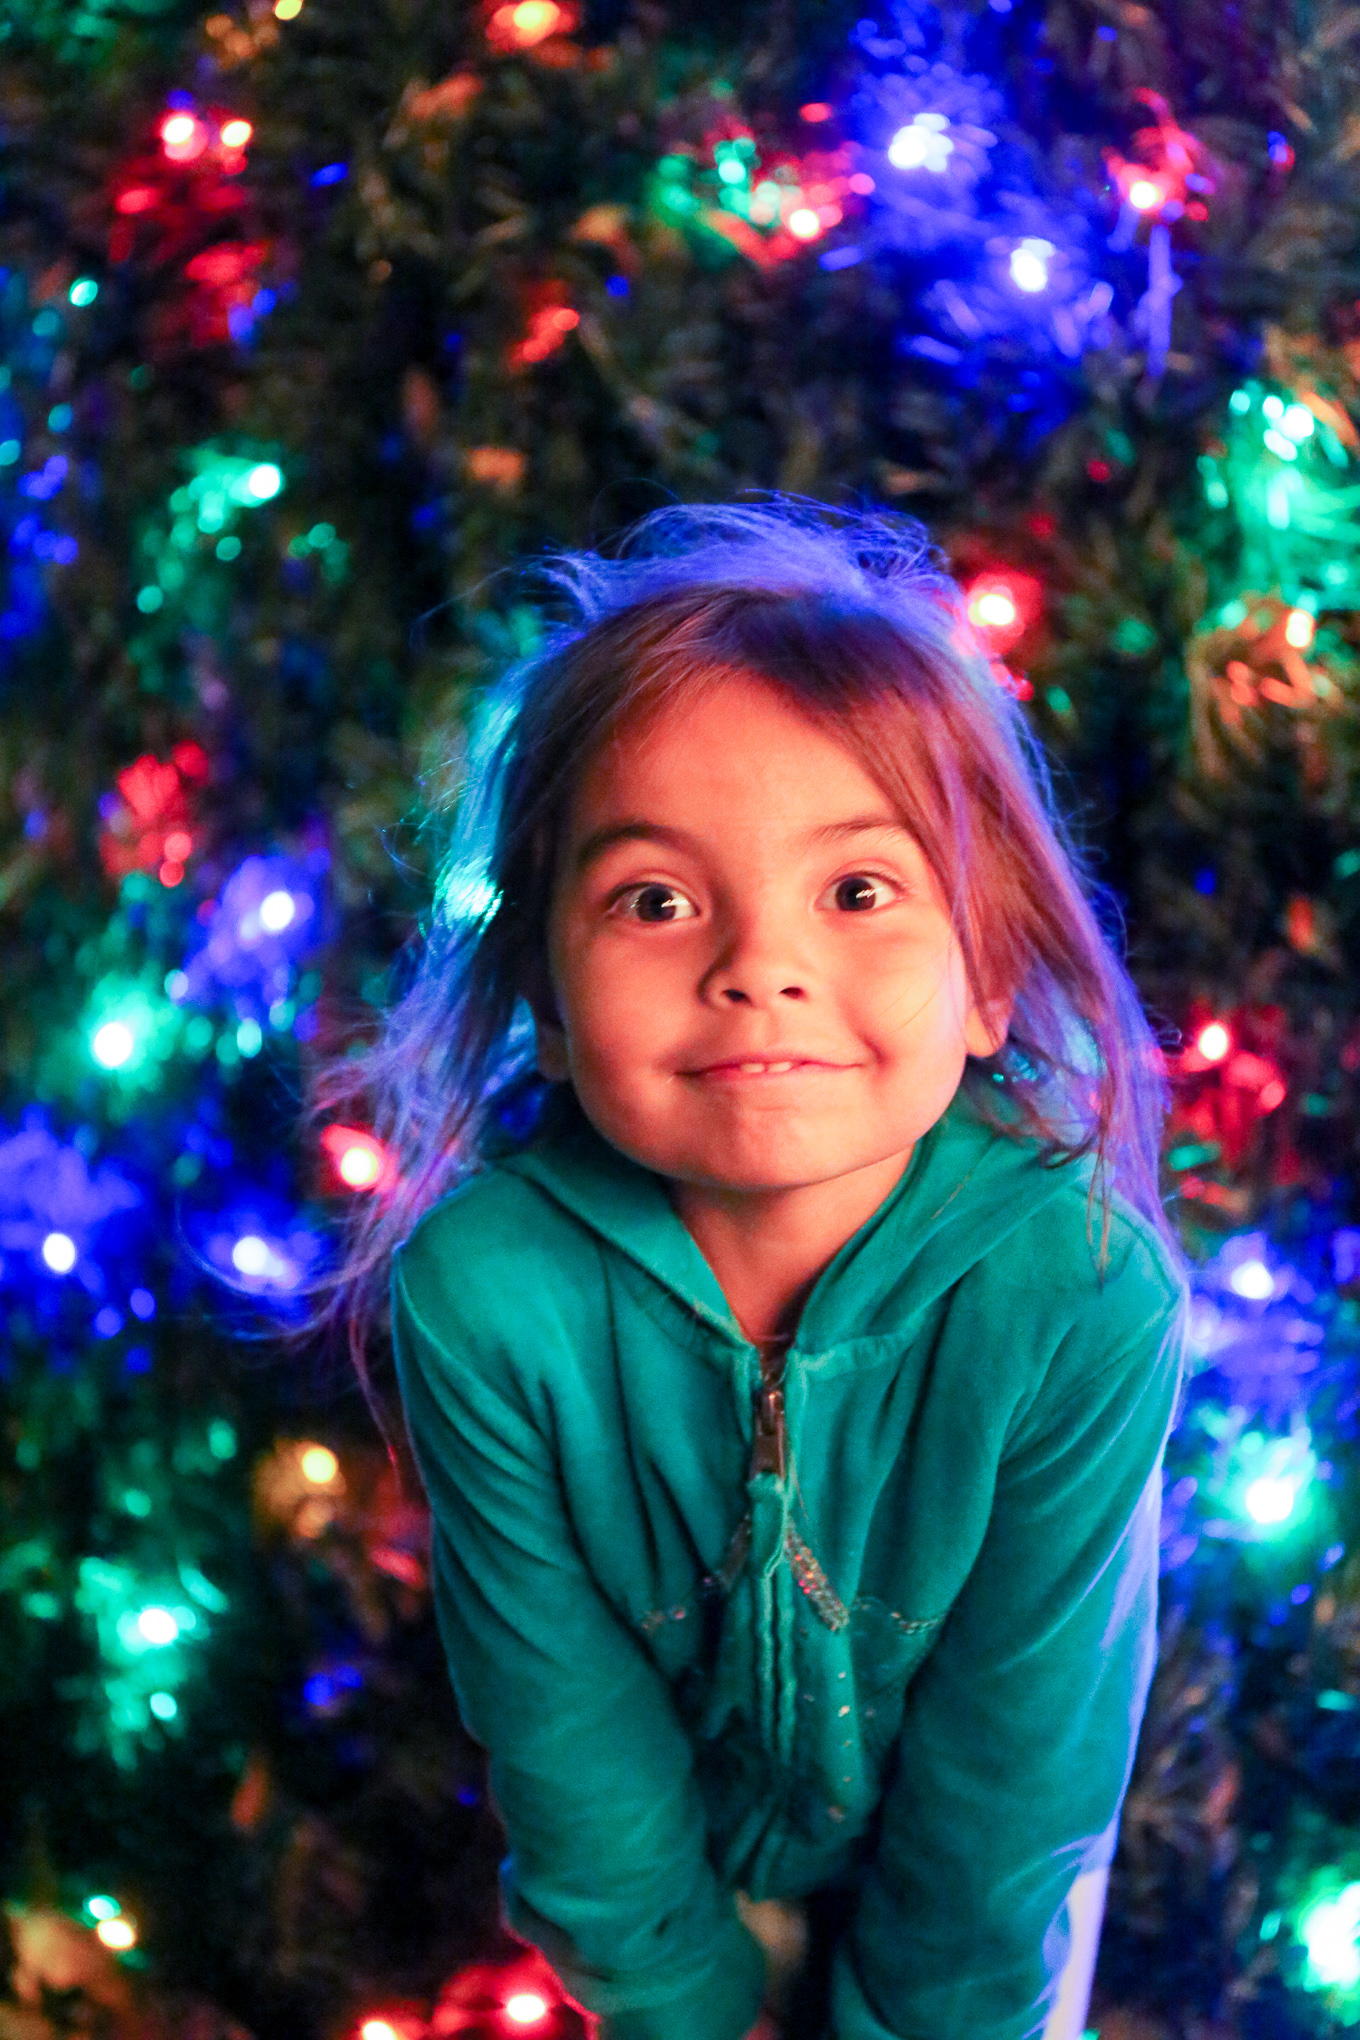 unclose of girl smiling with tree in the background